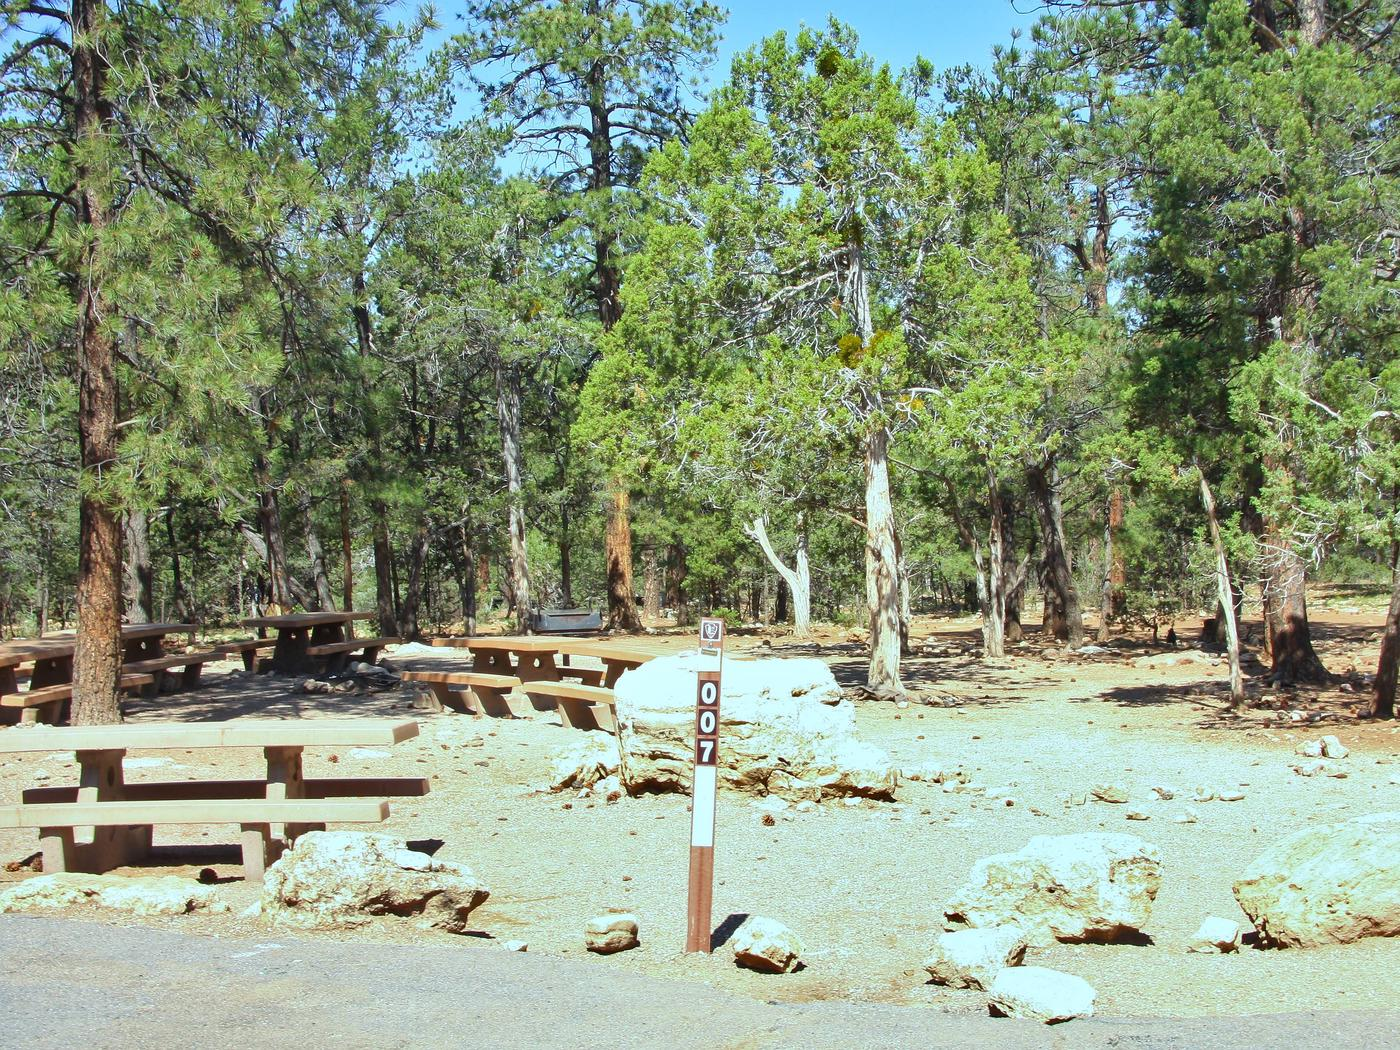 Picnic tables, fire pit, and parking spot, Mather Campground